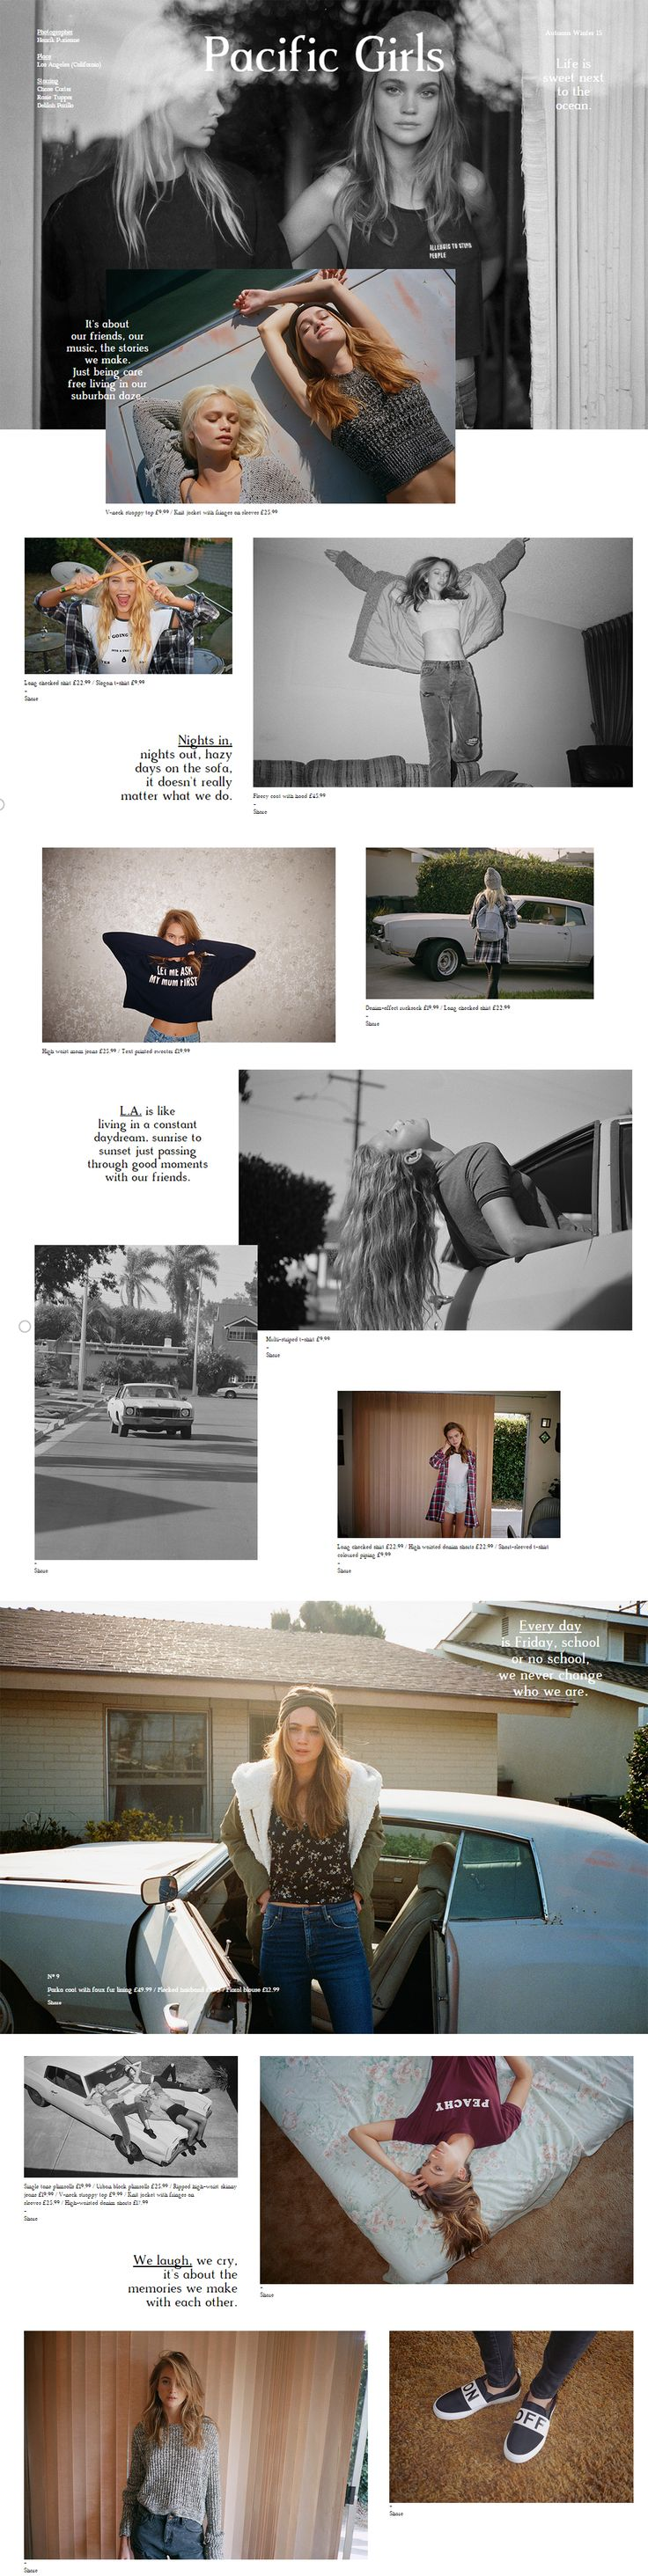 PULL & BEAR - PACIFIC GIRLS LOOKBOOK  http://www.pullandbear.com/gb/en/editorial/p%26b-pacific-girls-%7C-woman -c1474011.html